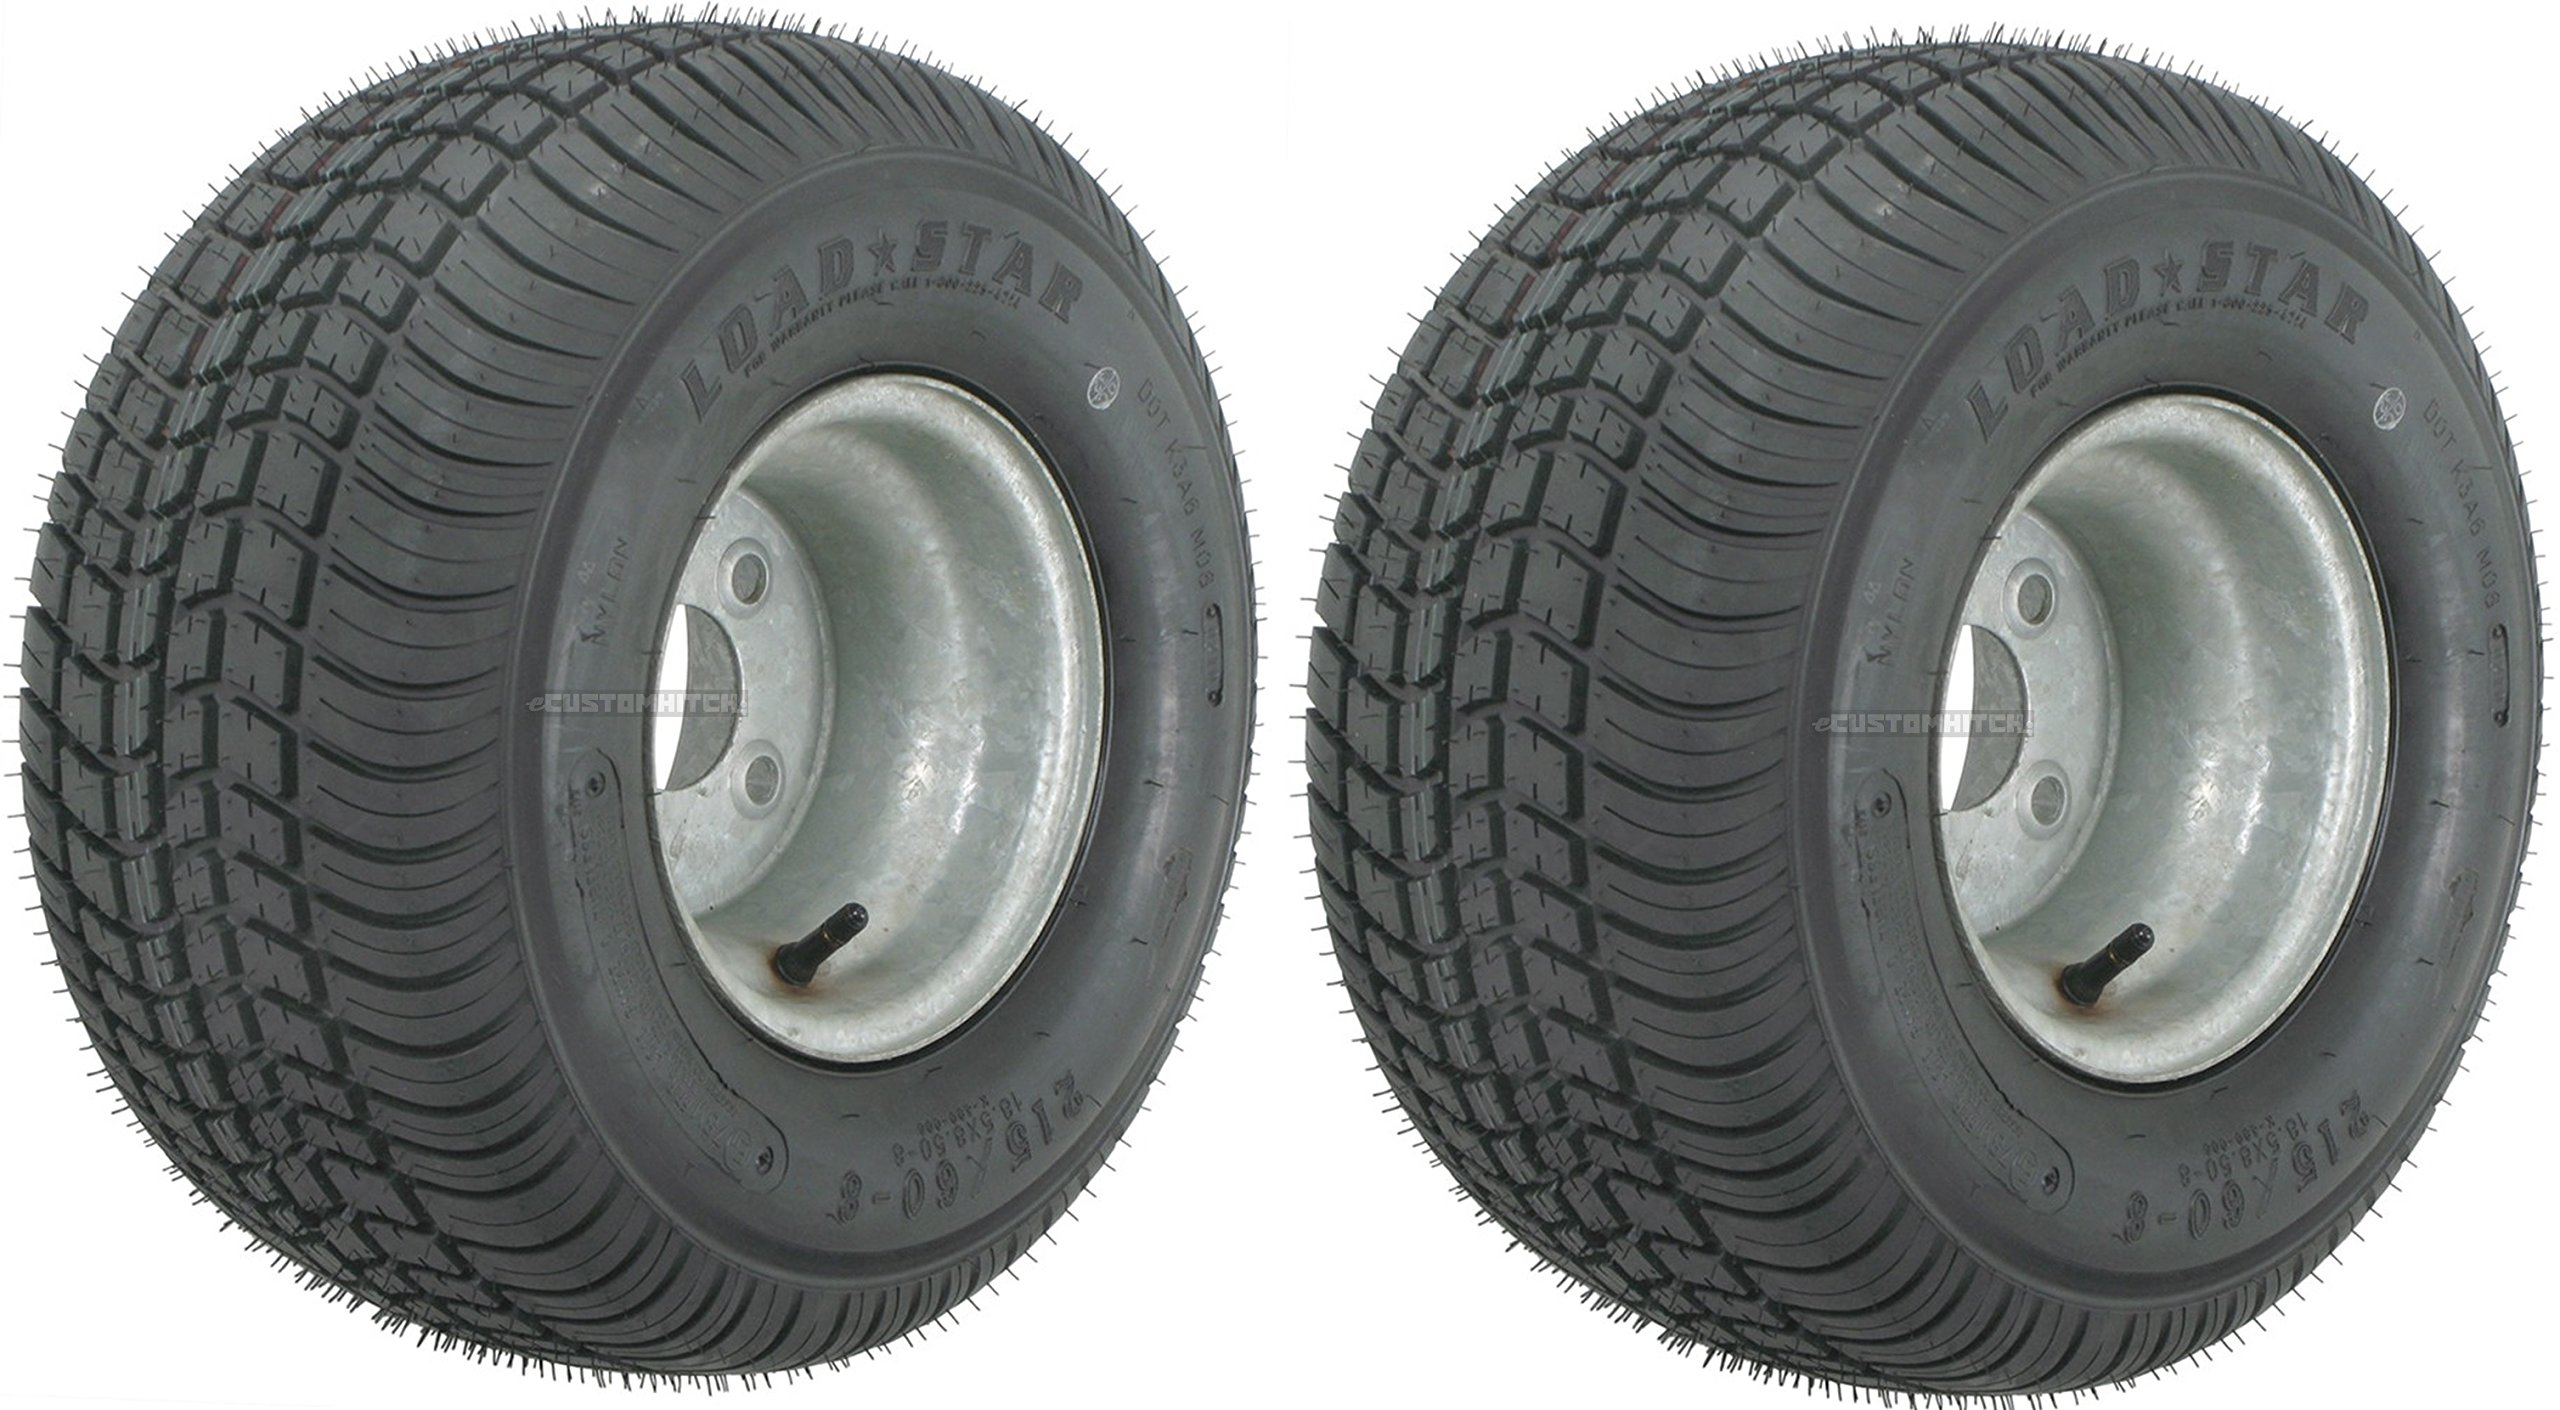 2-Pack Trailer Tires On Galvanized Rims 18.5x8.5-8 18.5 x 8.5-8 Load C 4 Lug by eCustomRim (Image #3)